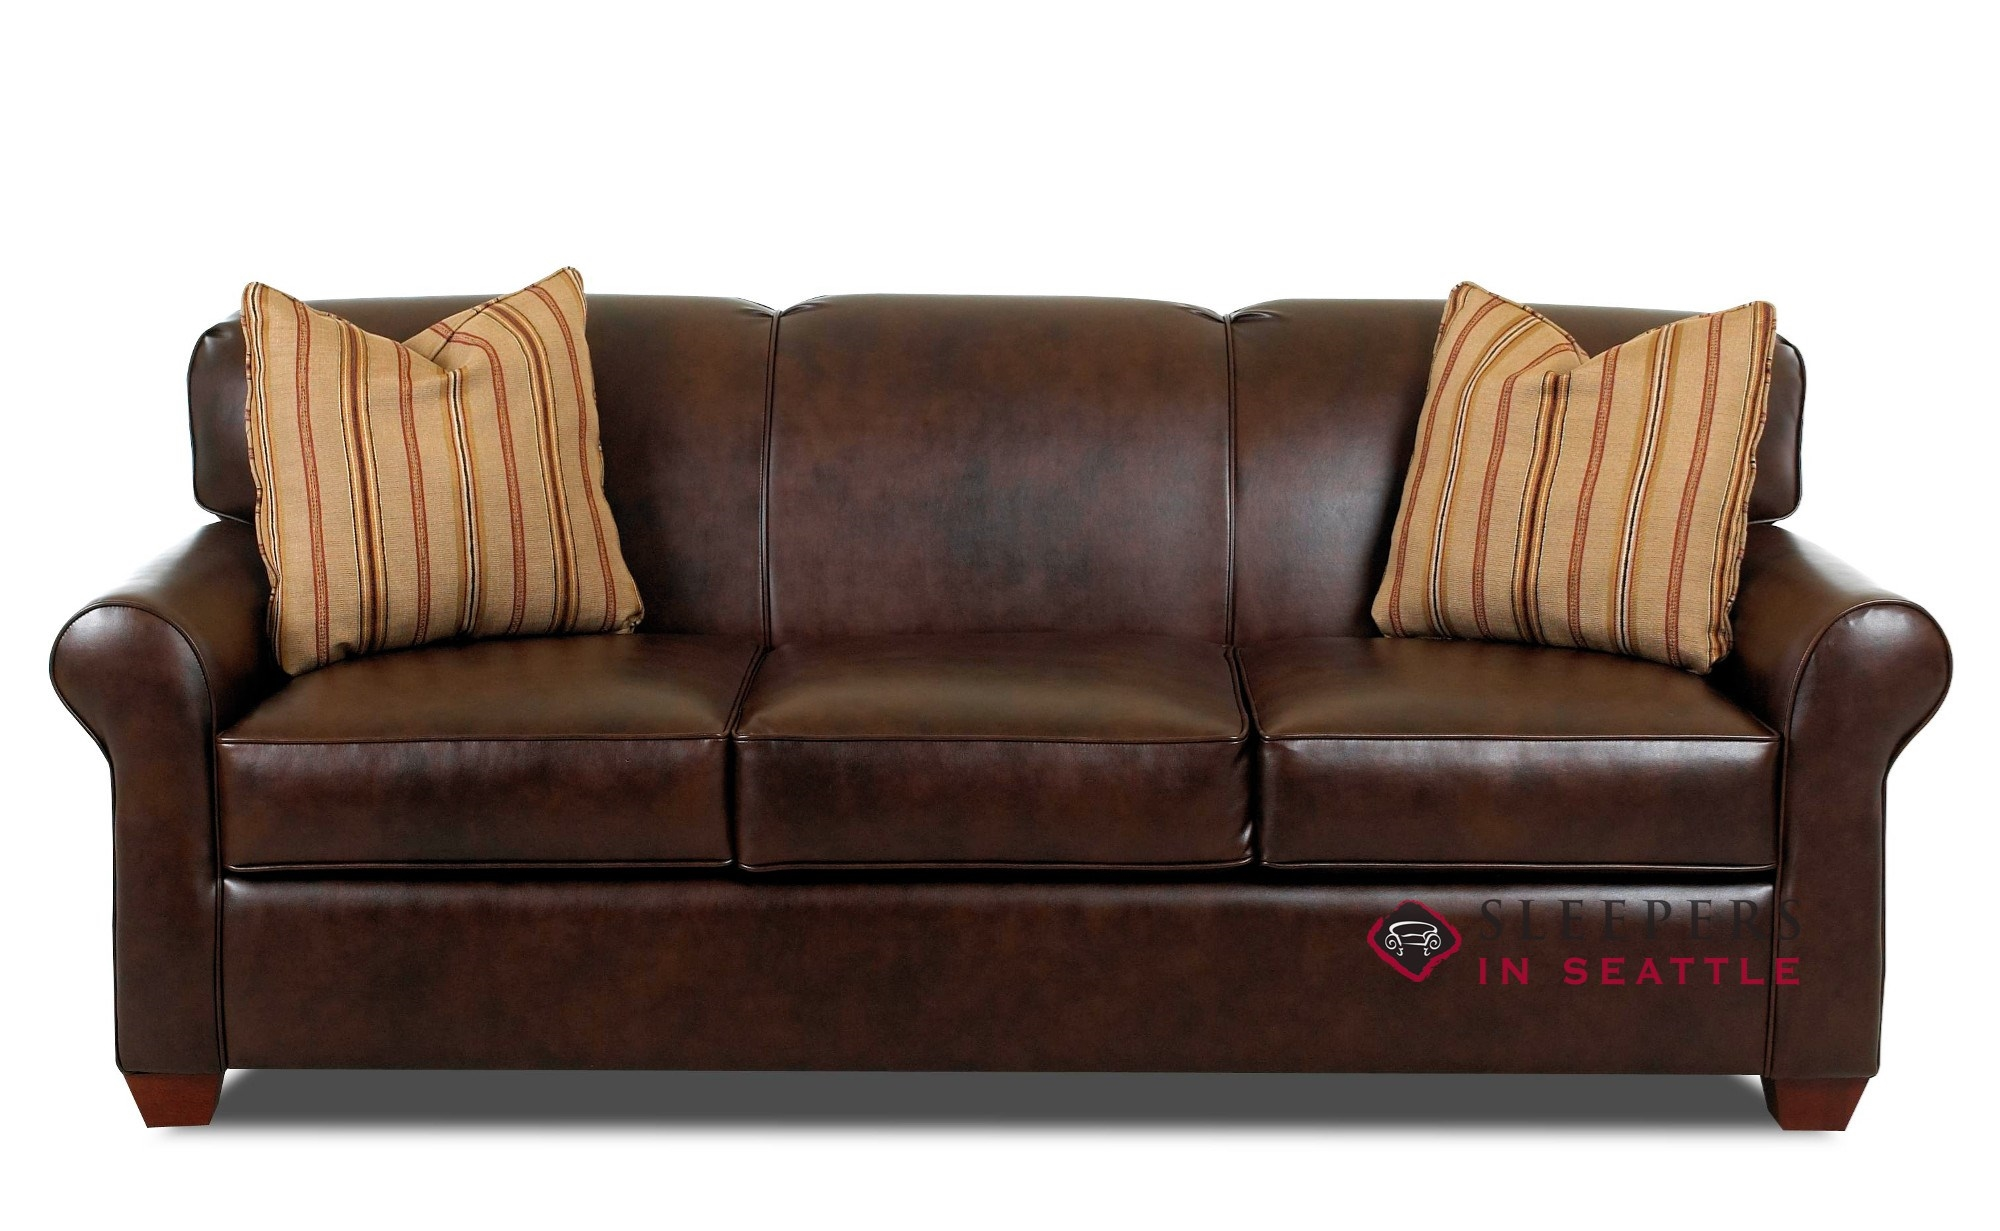 Customize And Personalize Calgary Queen Leather Sofa By Savvy Queen Size Sofa Bed